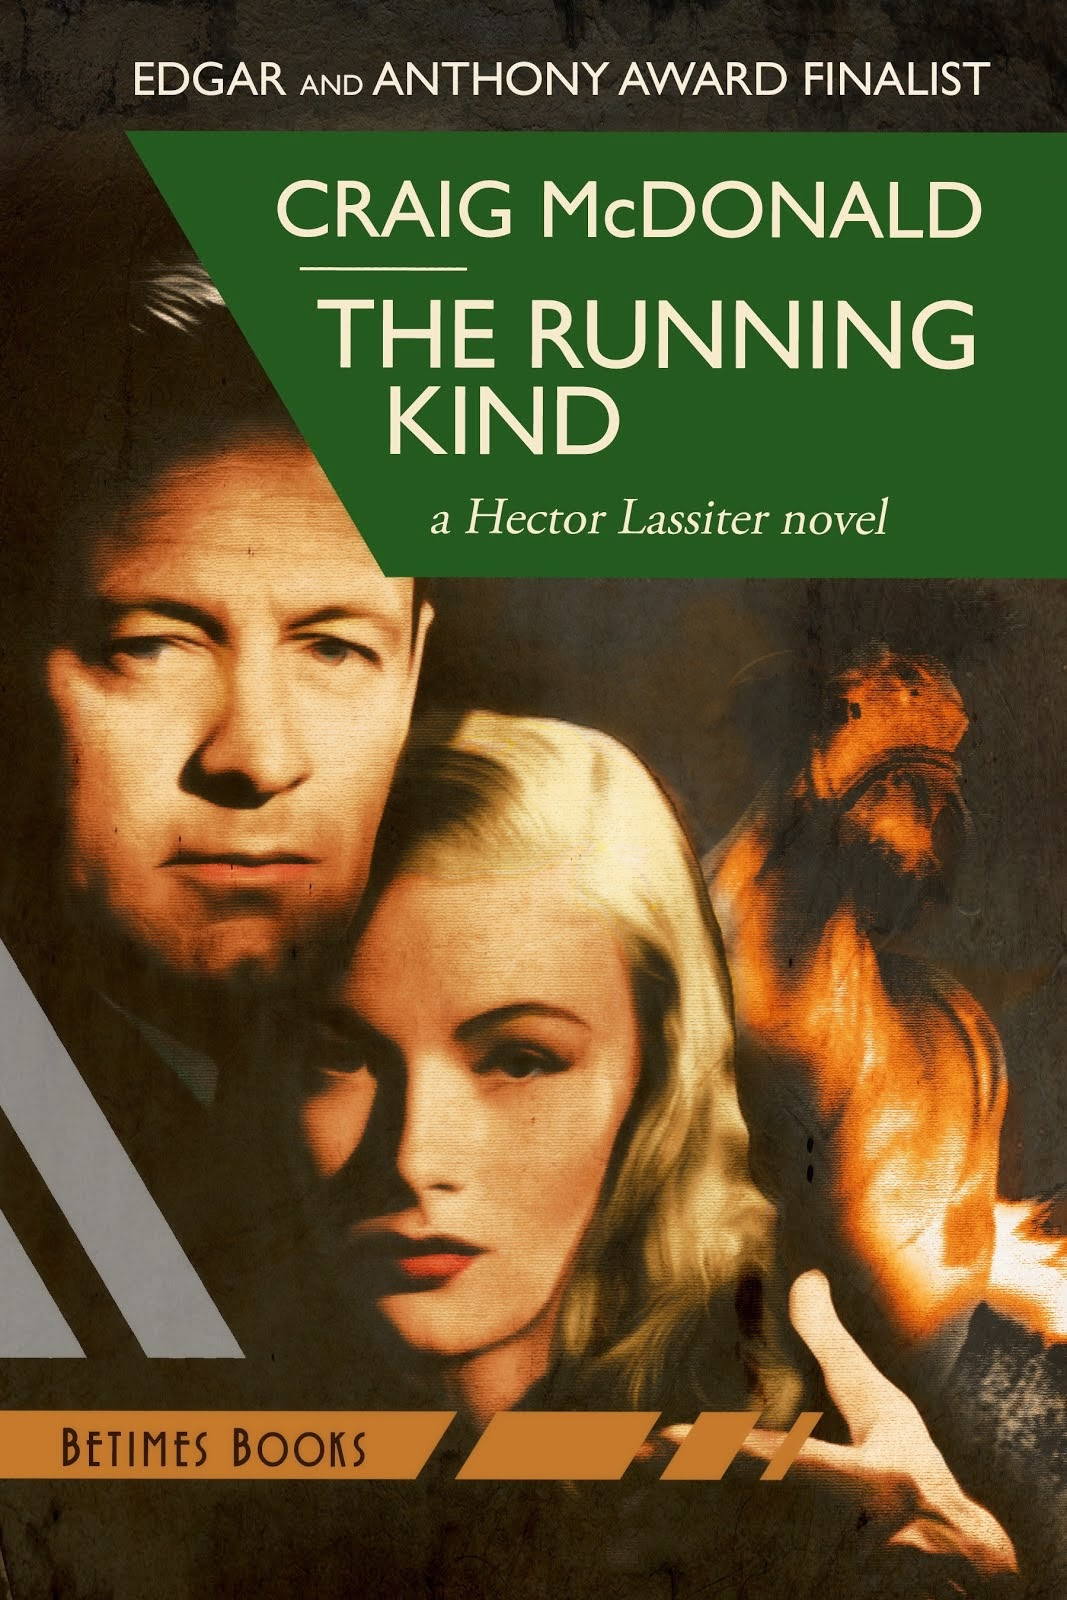 THE RUNNING KIND (HECTOR LASSITER SERIES #6)